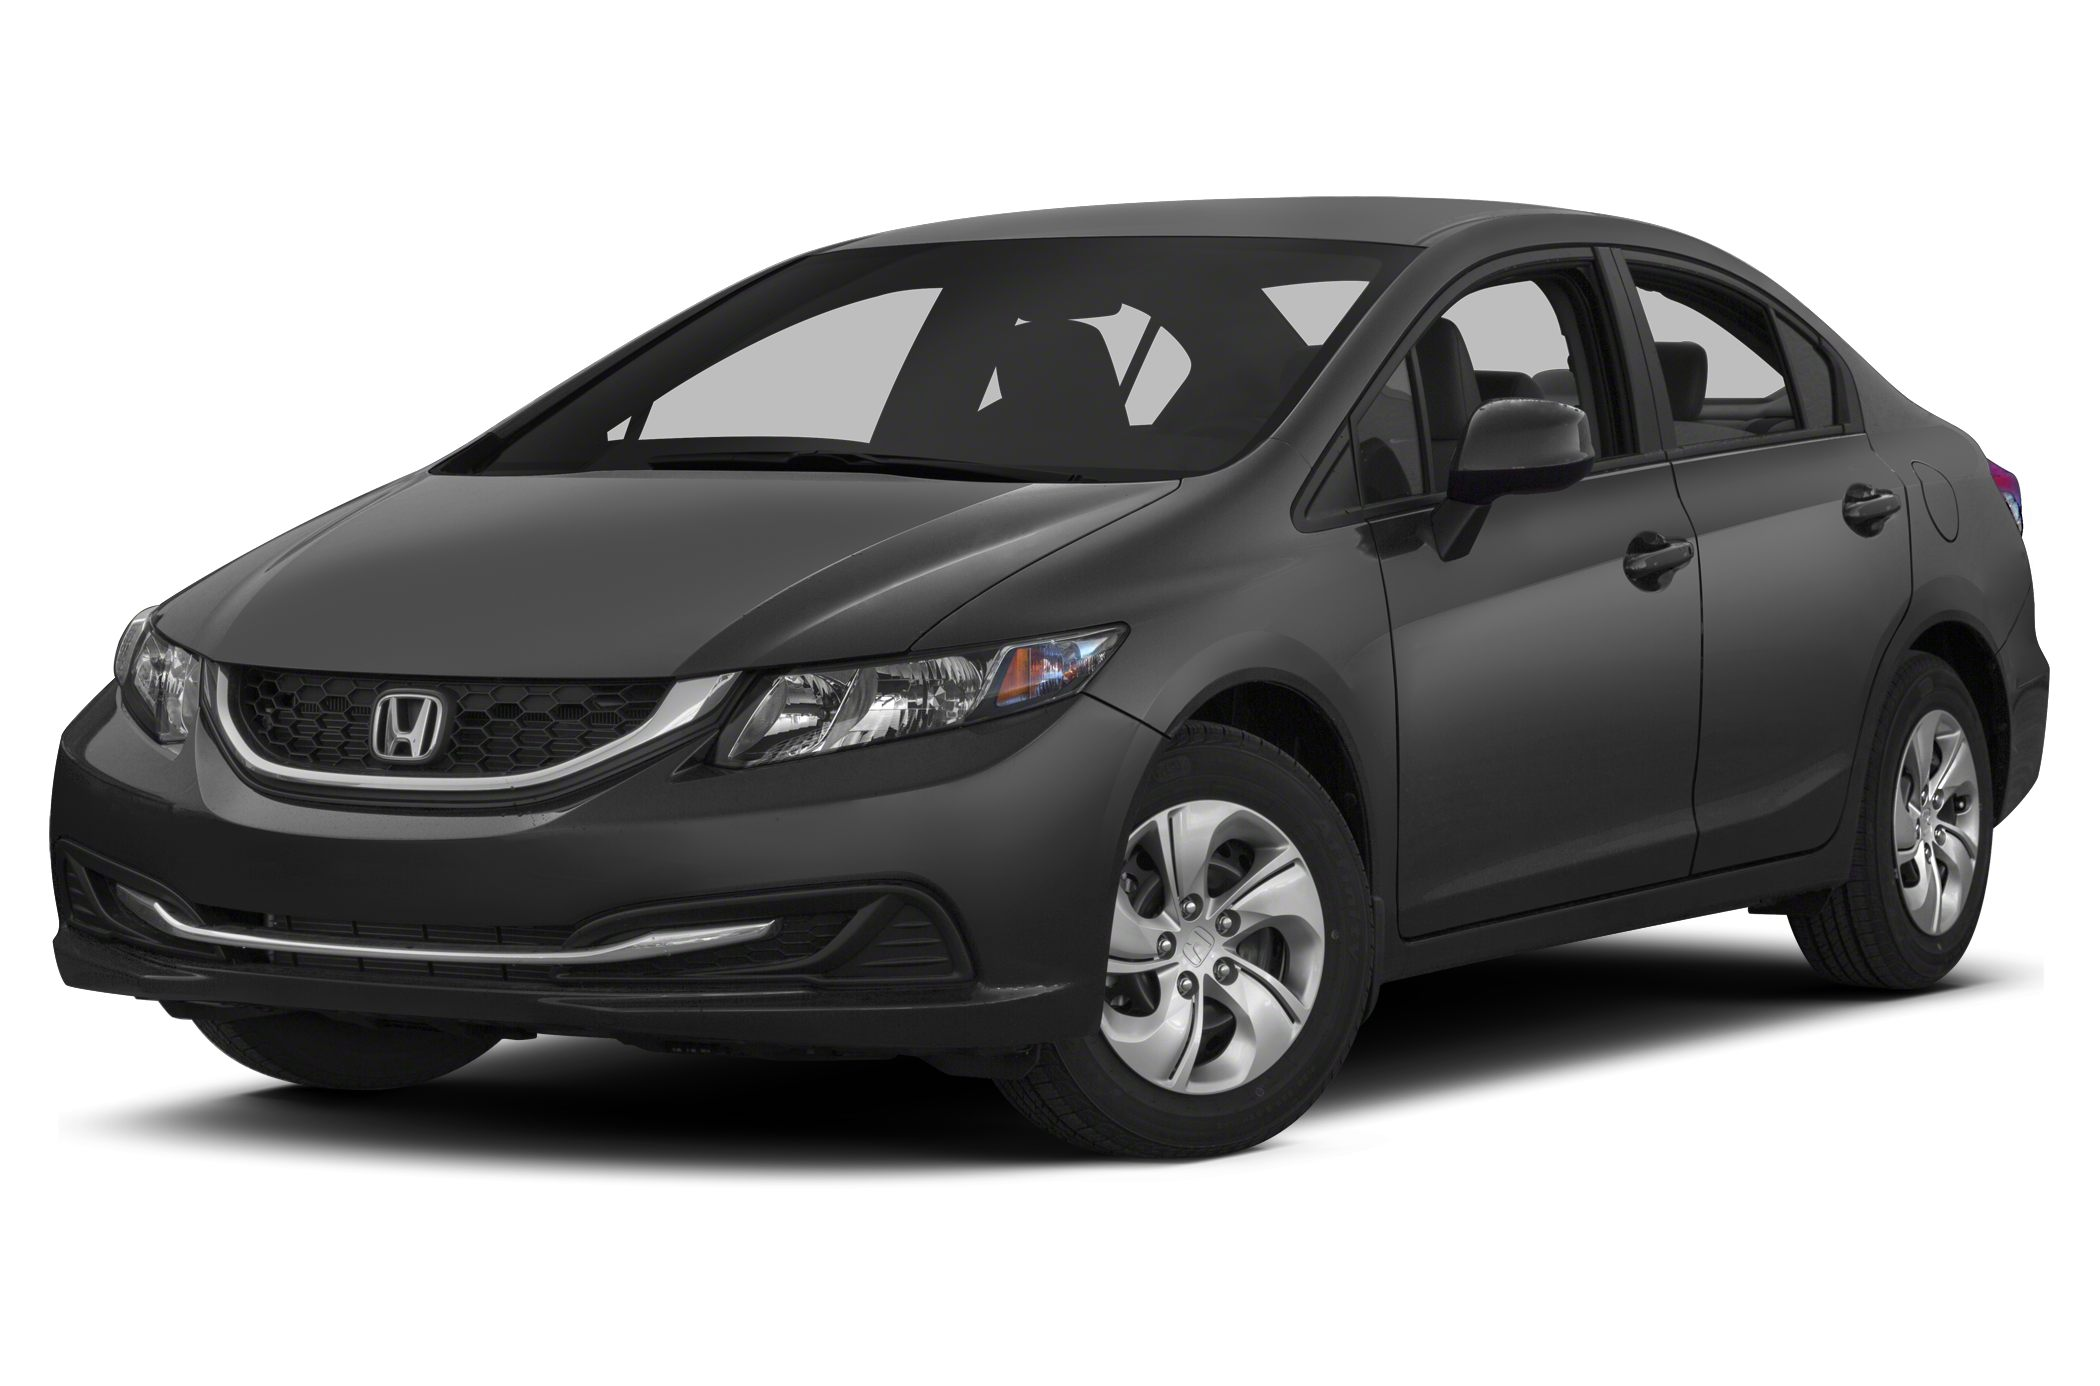 2013 Honda Civic EX Looks and drives like new Low miles indicate the vehicle is merely gently use